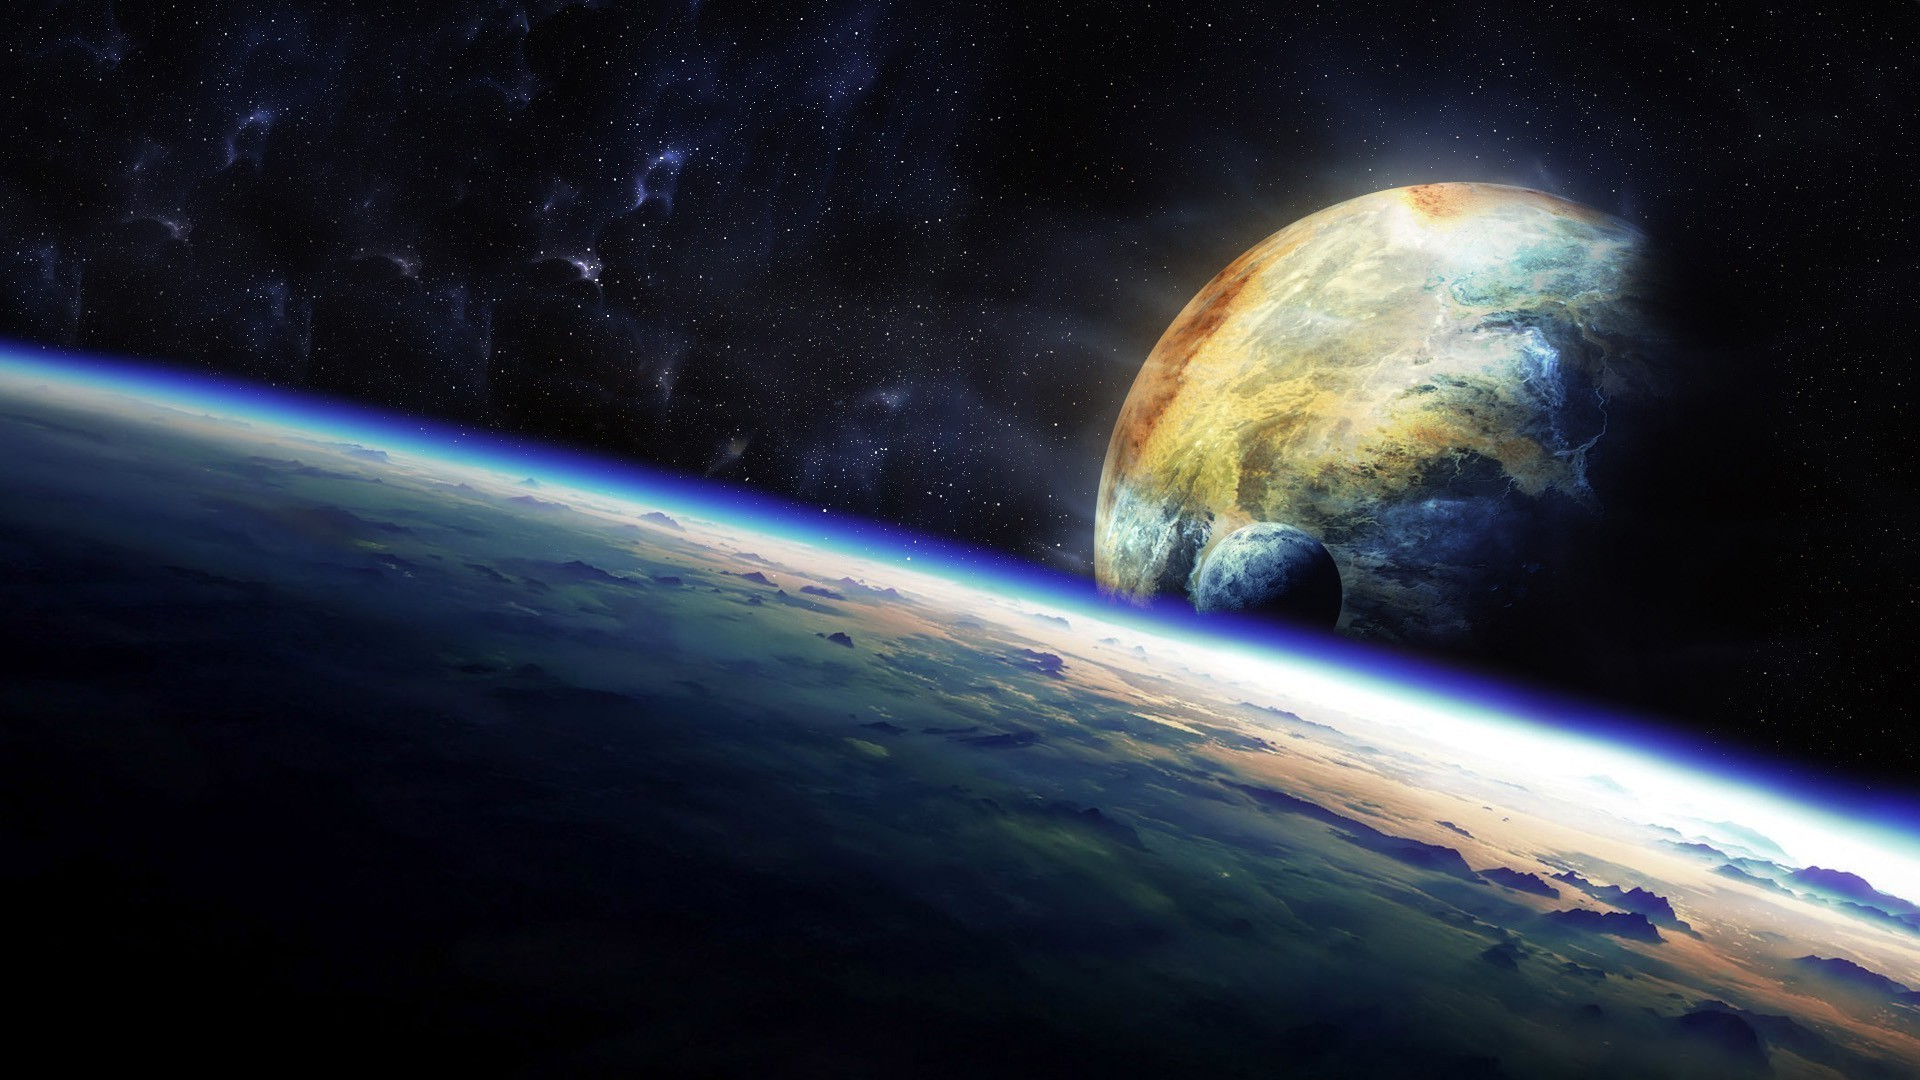 Earth from space wallpaper 65 images for Sfondi spazio hd